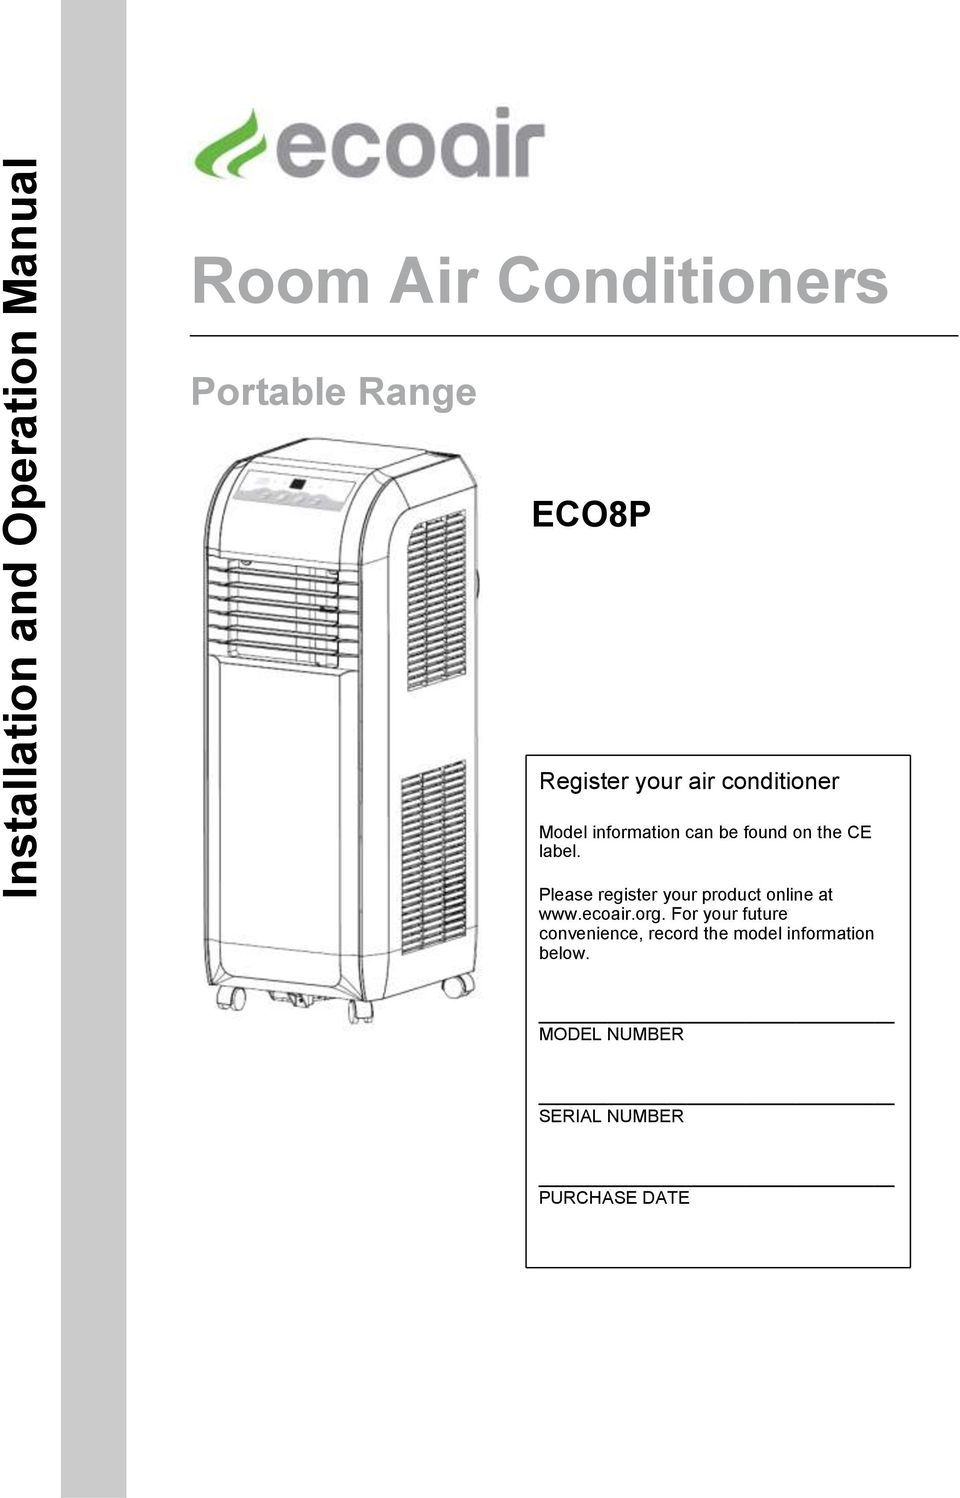 Please register your product online at www.ecoair.org.